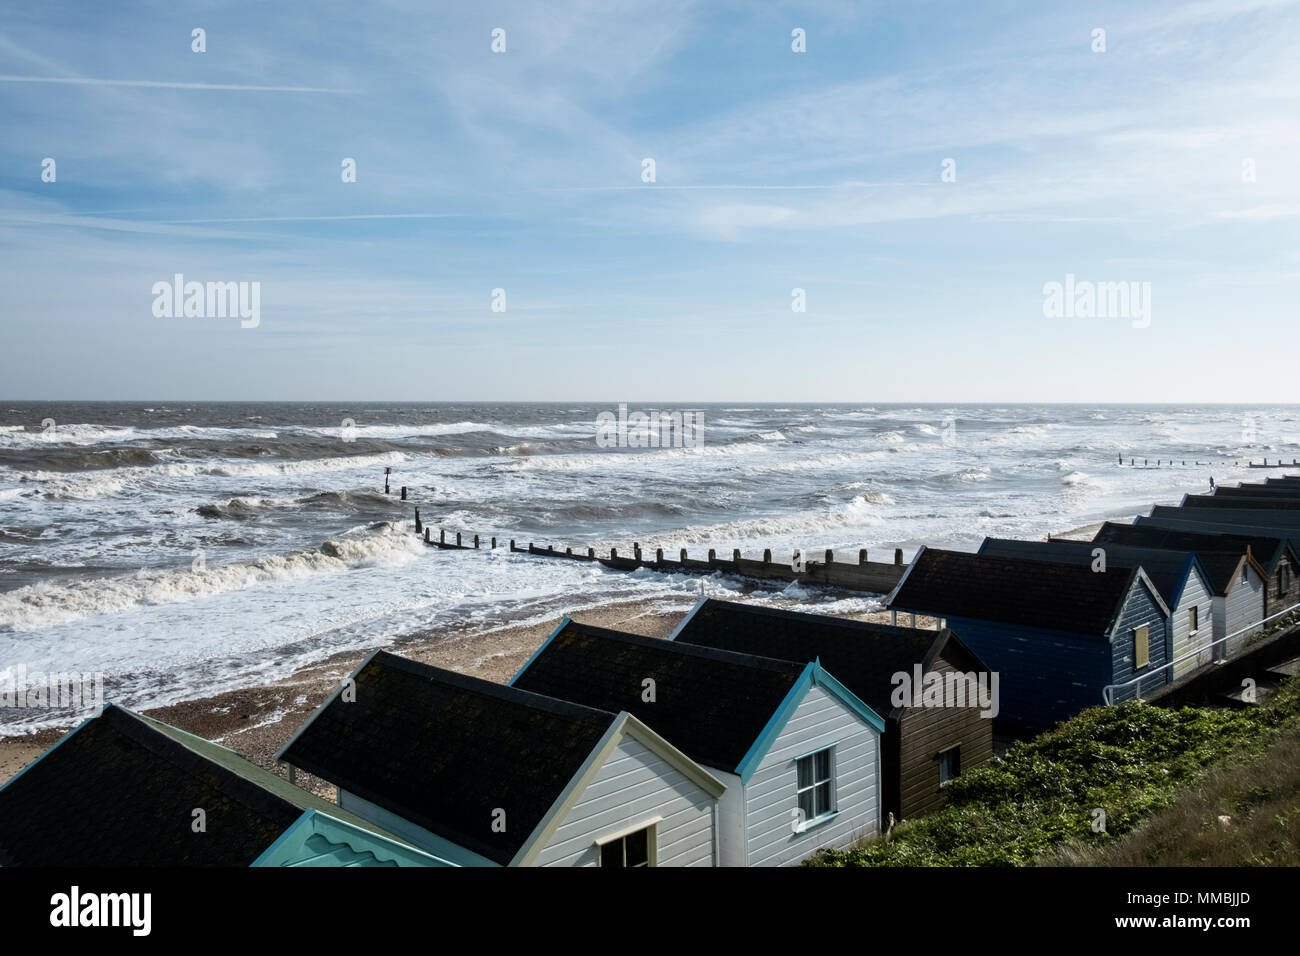 Seascape over a row of wooden beach huts, with waves rolling onto beach near groyne. - Stock Image